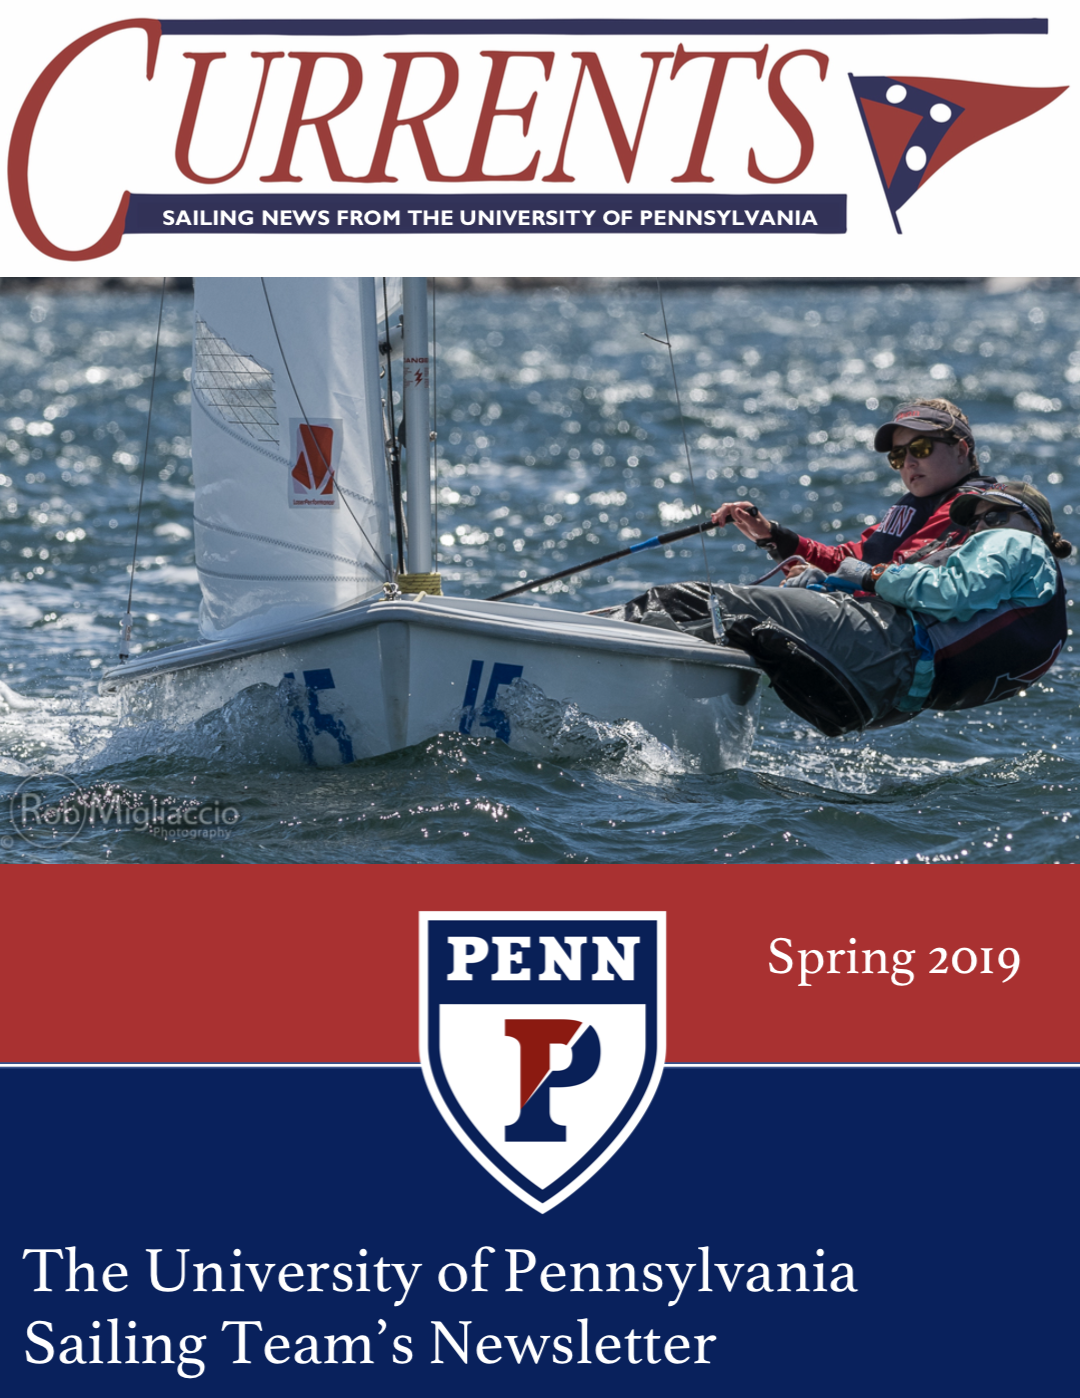 Currents - Spring 2019